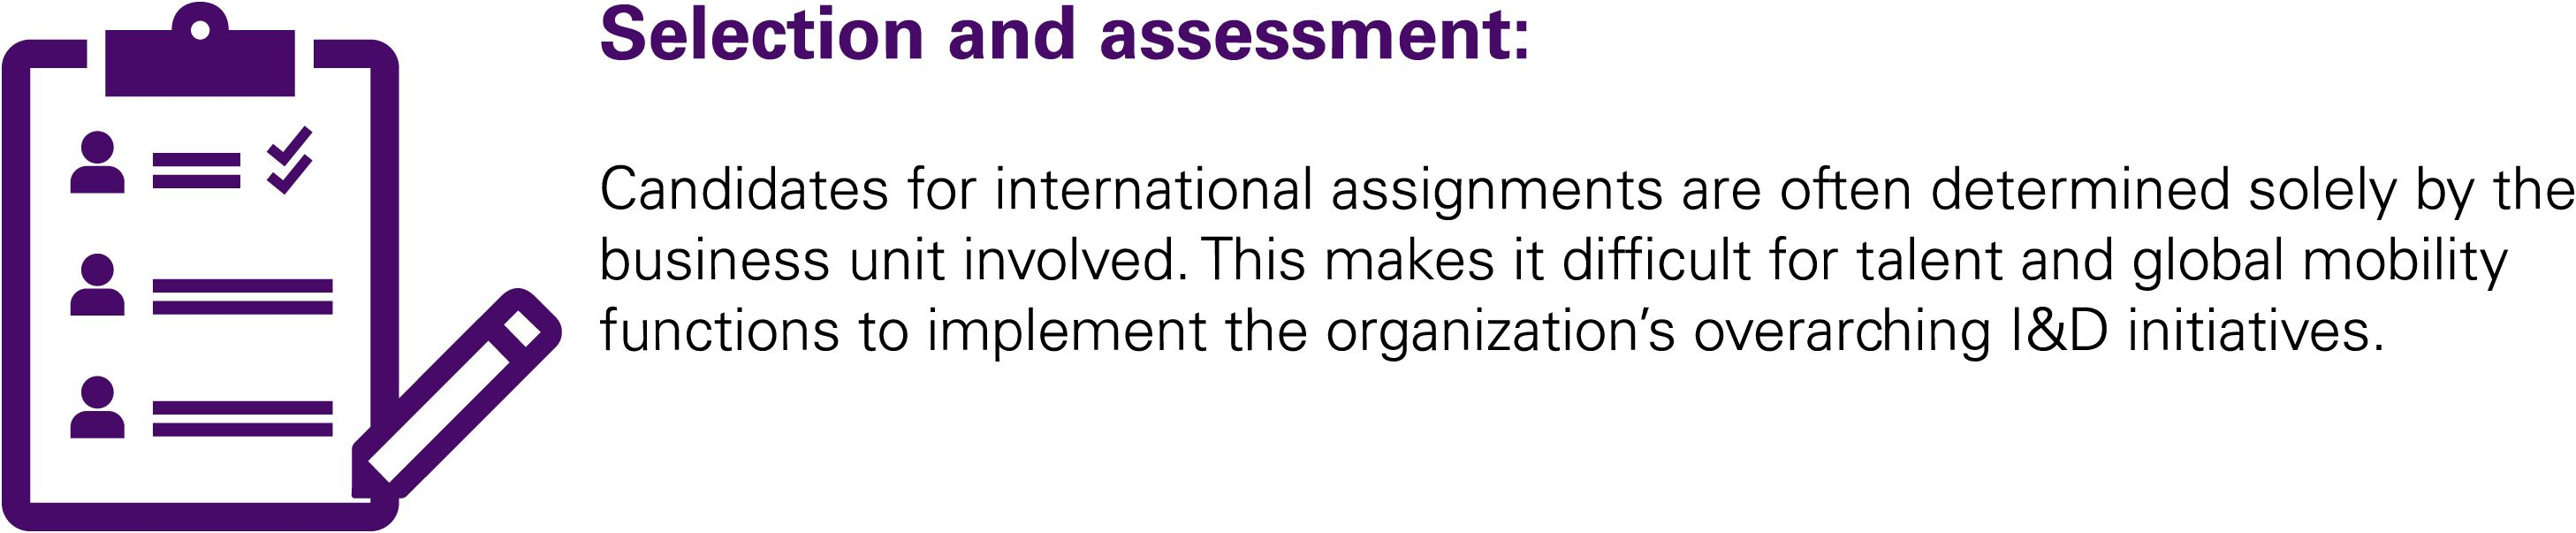 Selection and Assessment